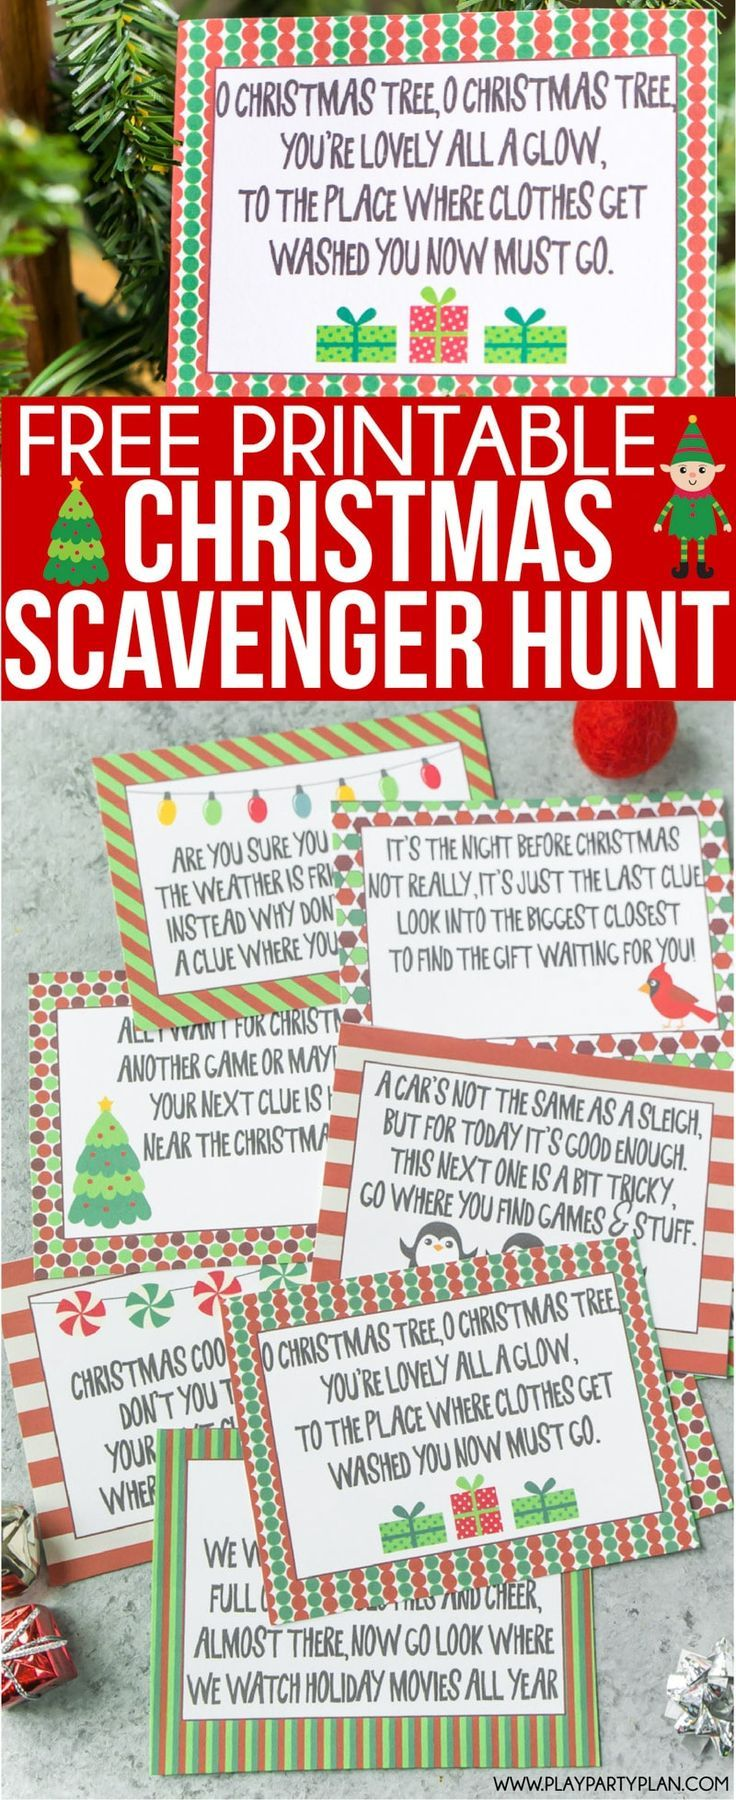 Free printable Christmas scavenger hunt clues for kids or for teens ...